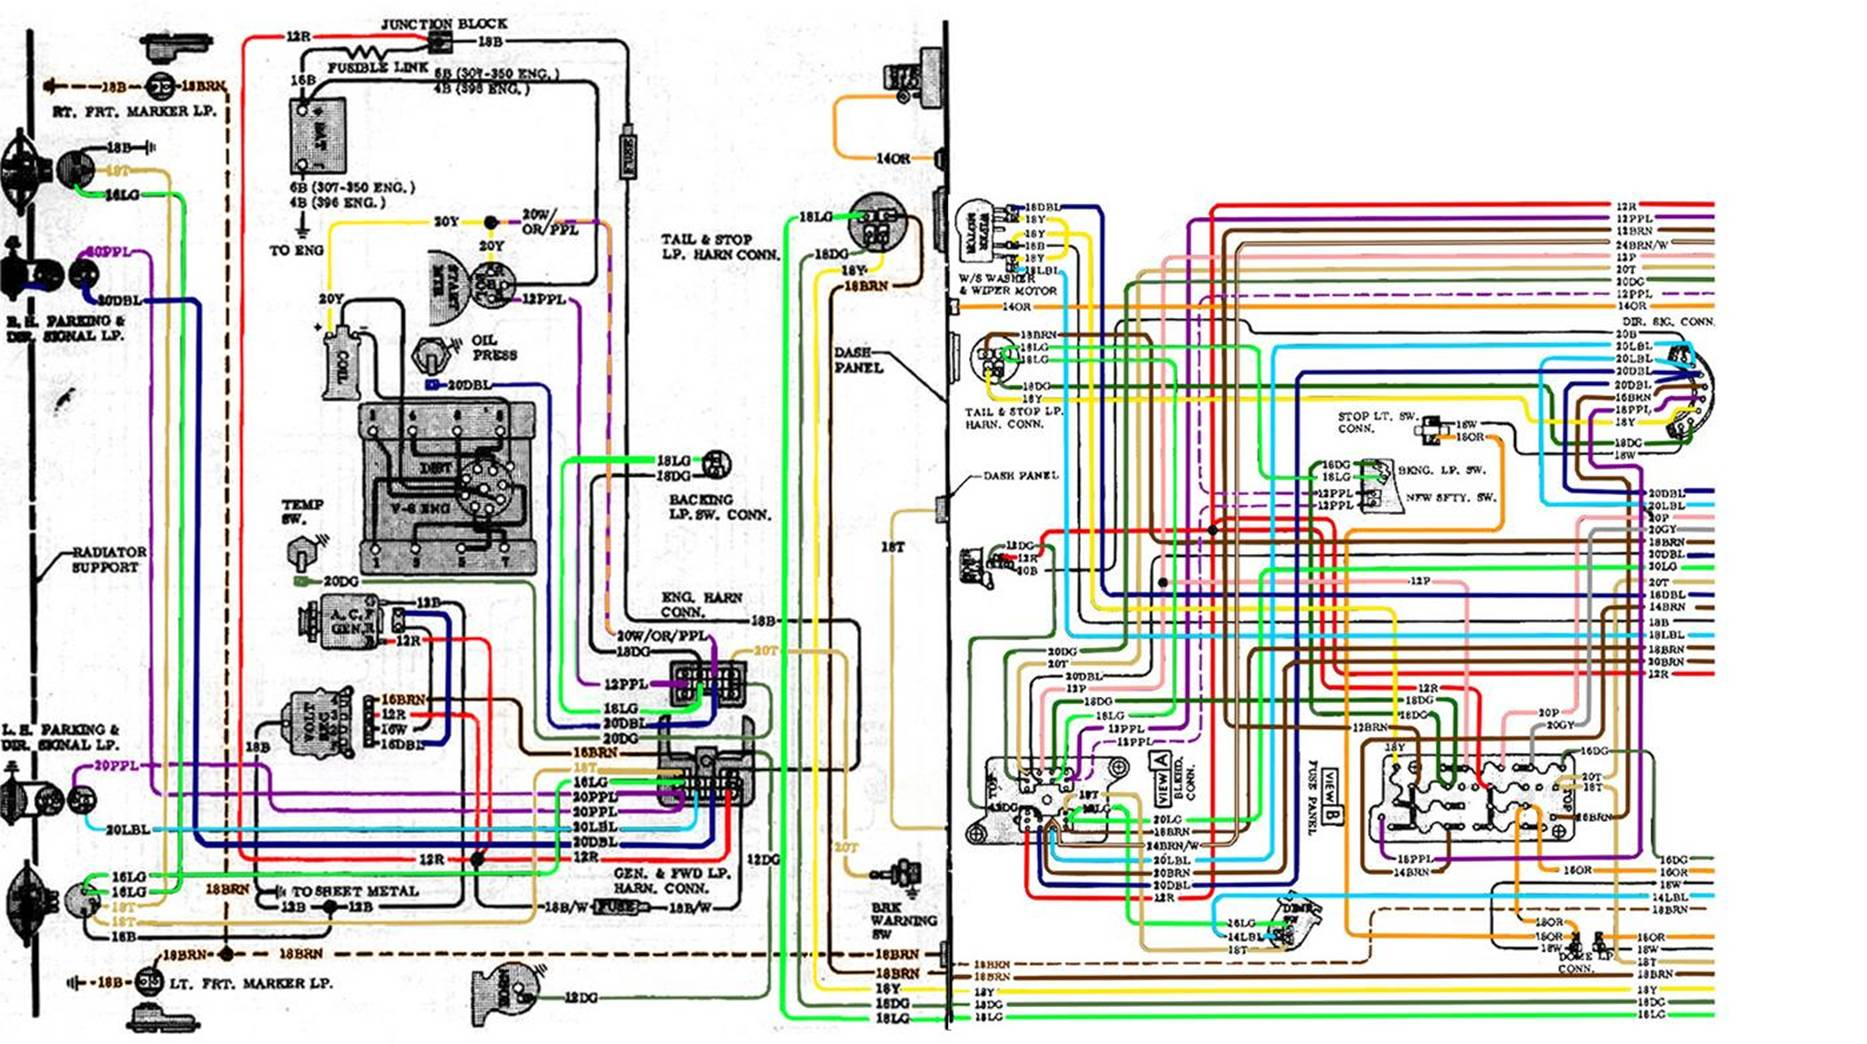 1970 Chevelle Headlight Wiring Diagram Not Lossing To A 38 Chevy Switch Wire 70 Simple Rh Mara Cujas De Alternator